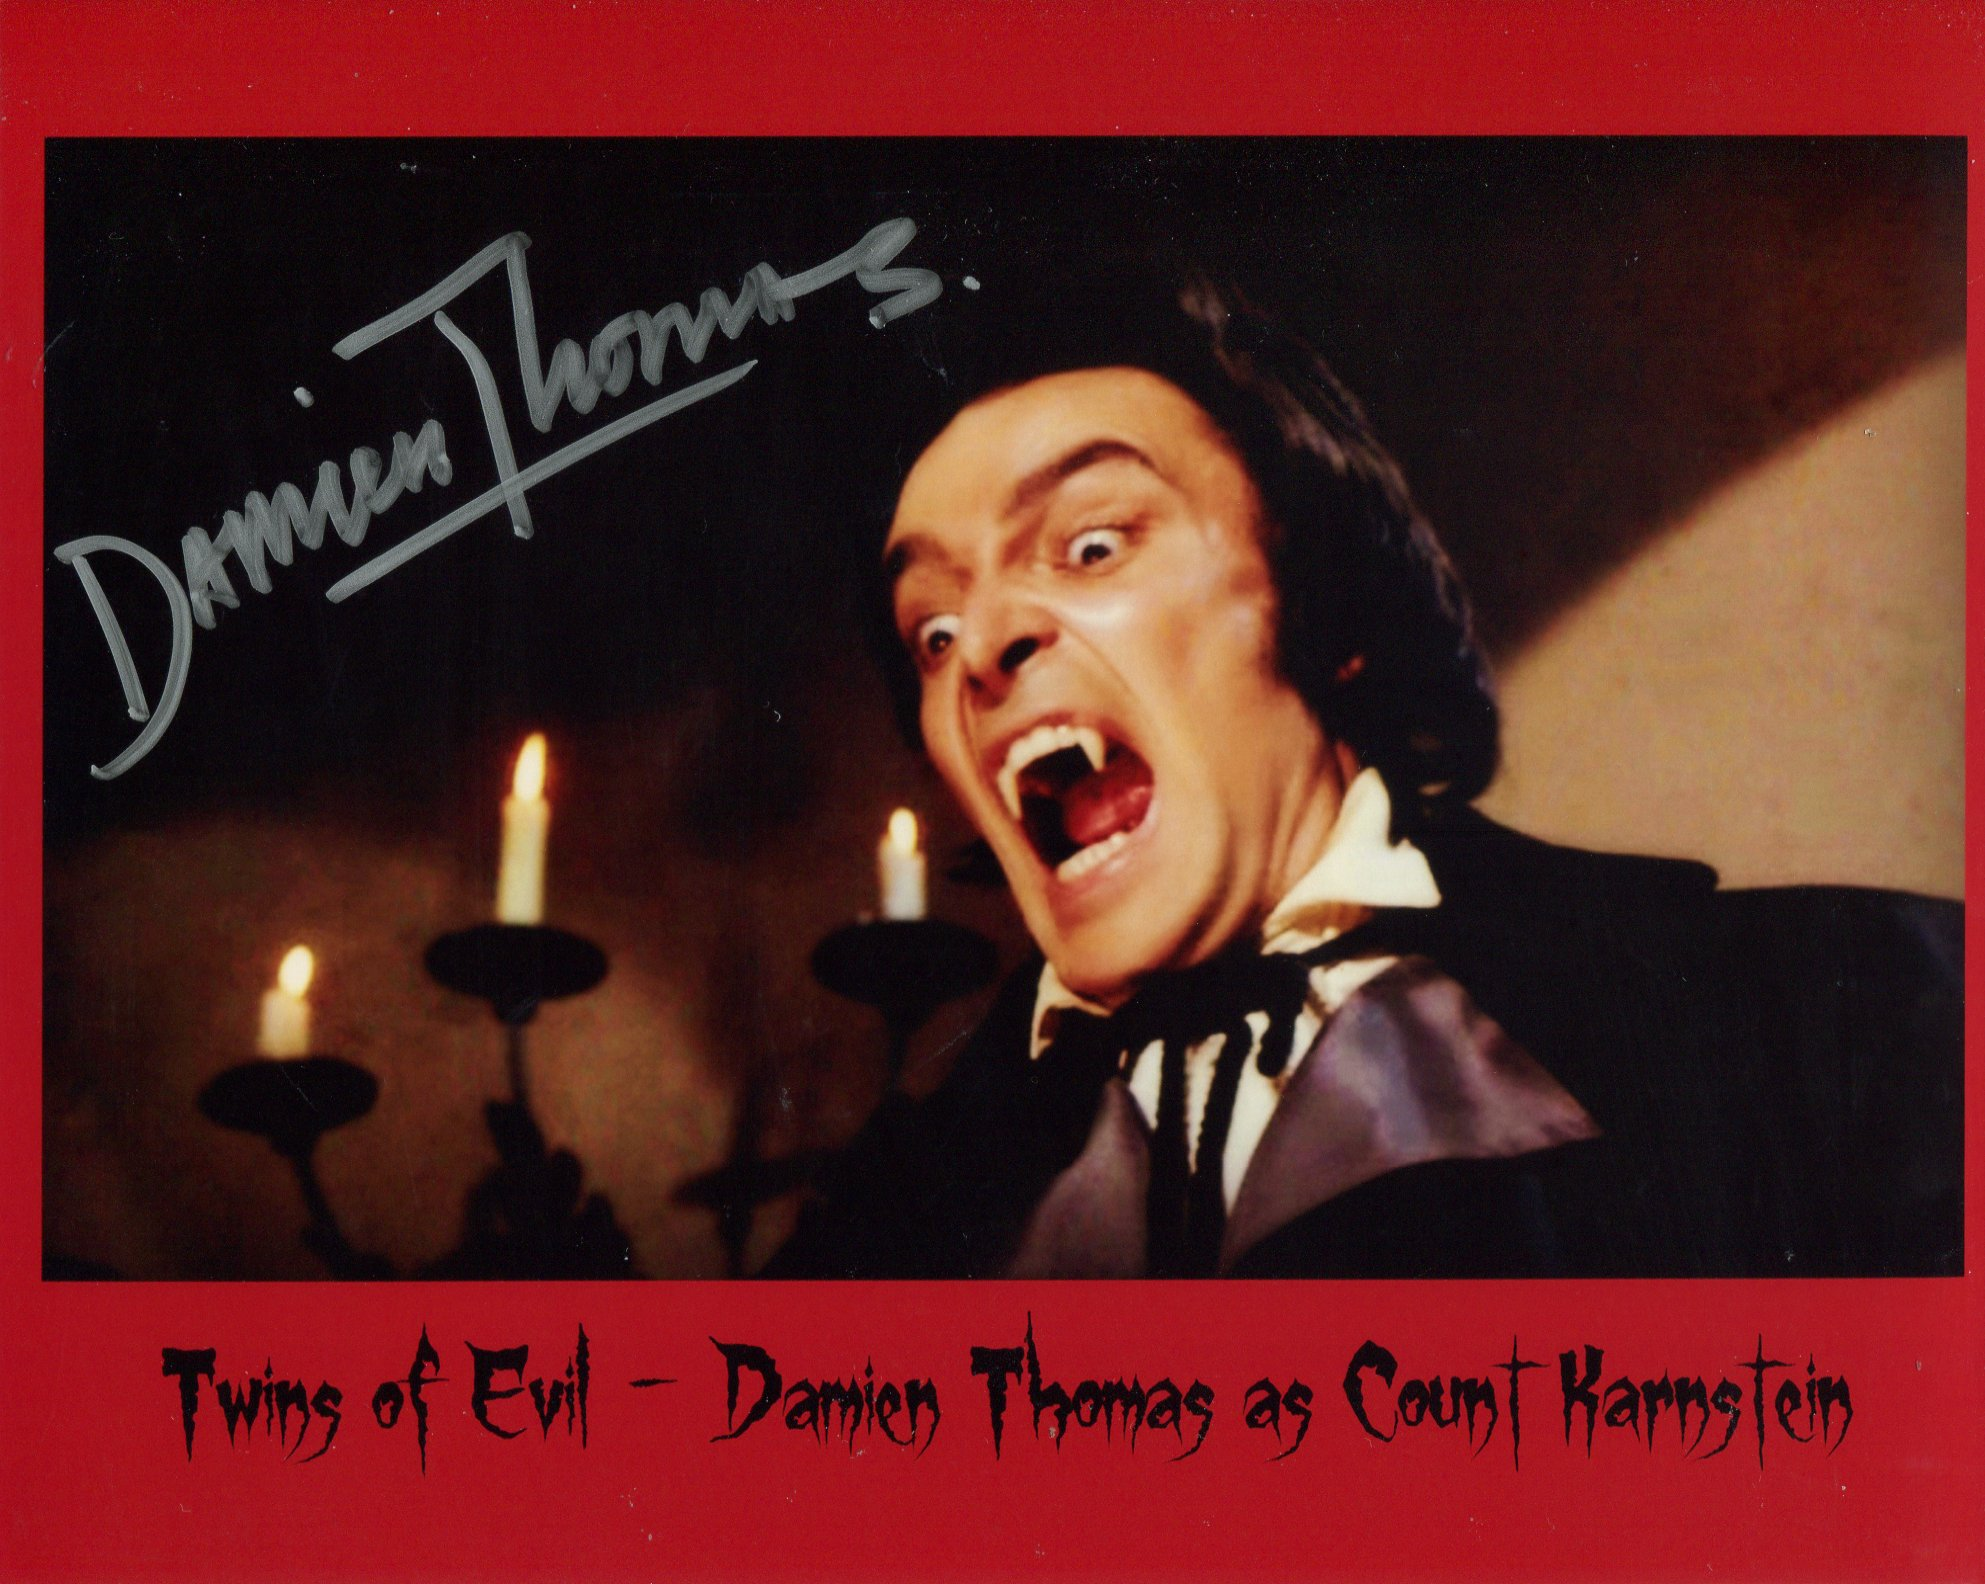 Twins of Evil horror movie 8x10 photo signed by actor Damien Thomas. Good condition. All